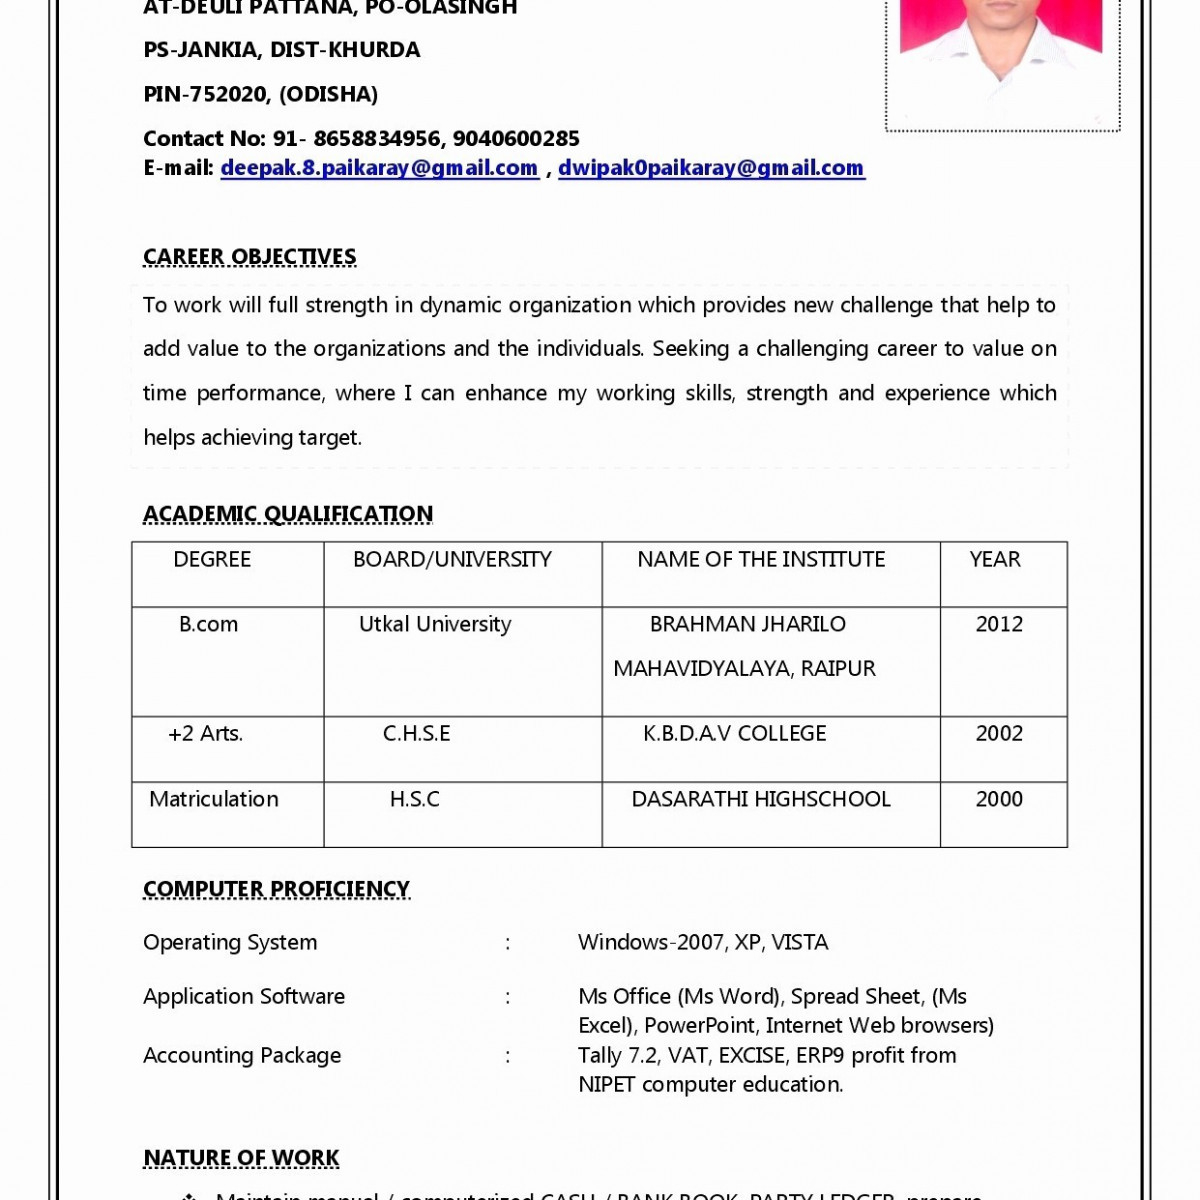 Resume with Picture Template - Sample Resume for Job Application Beautiful Lovely Make A Resume